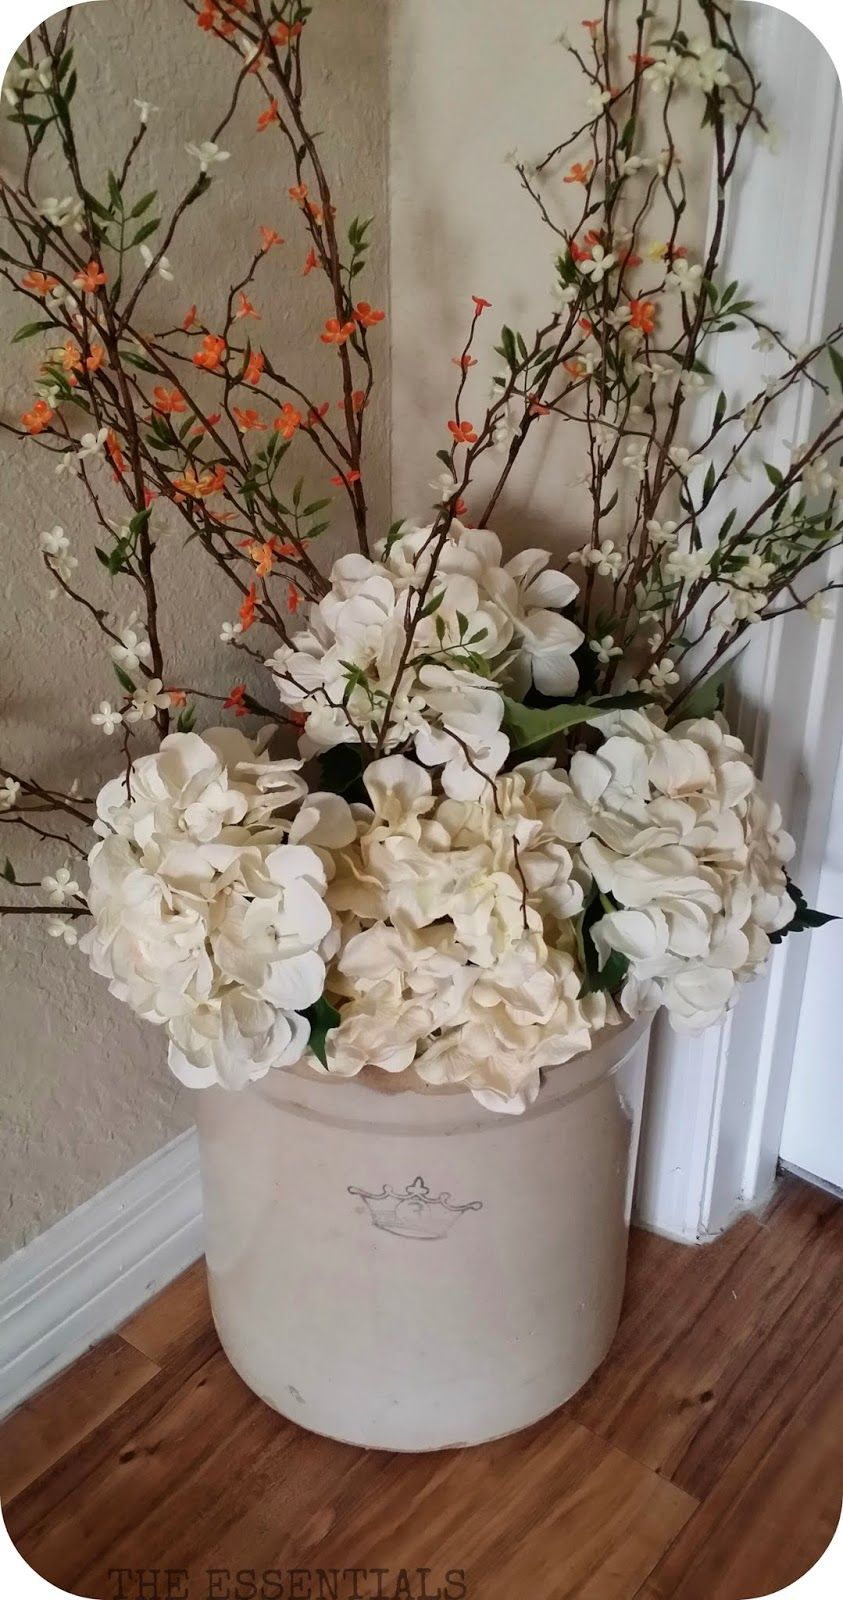 English wedding decoration ideas  Dress up and old crock with flowers for the season  For the Home